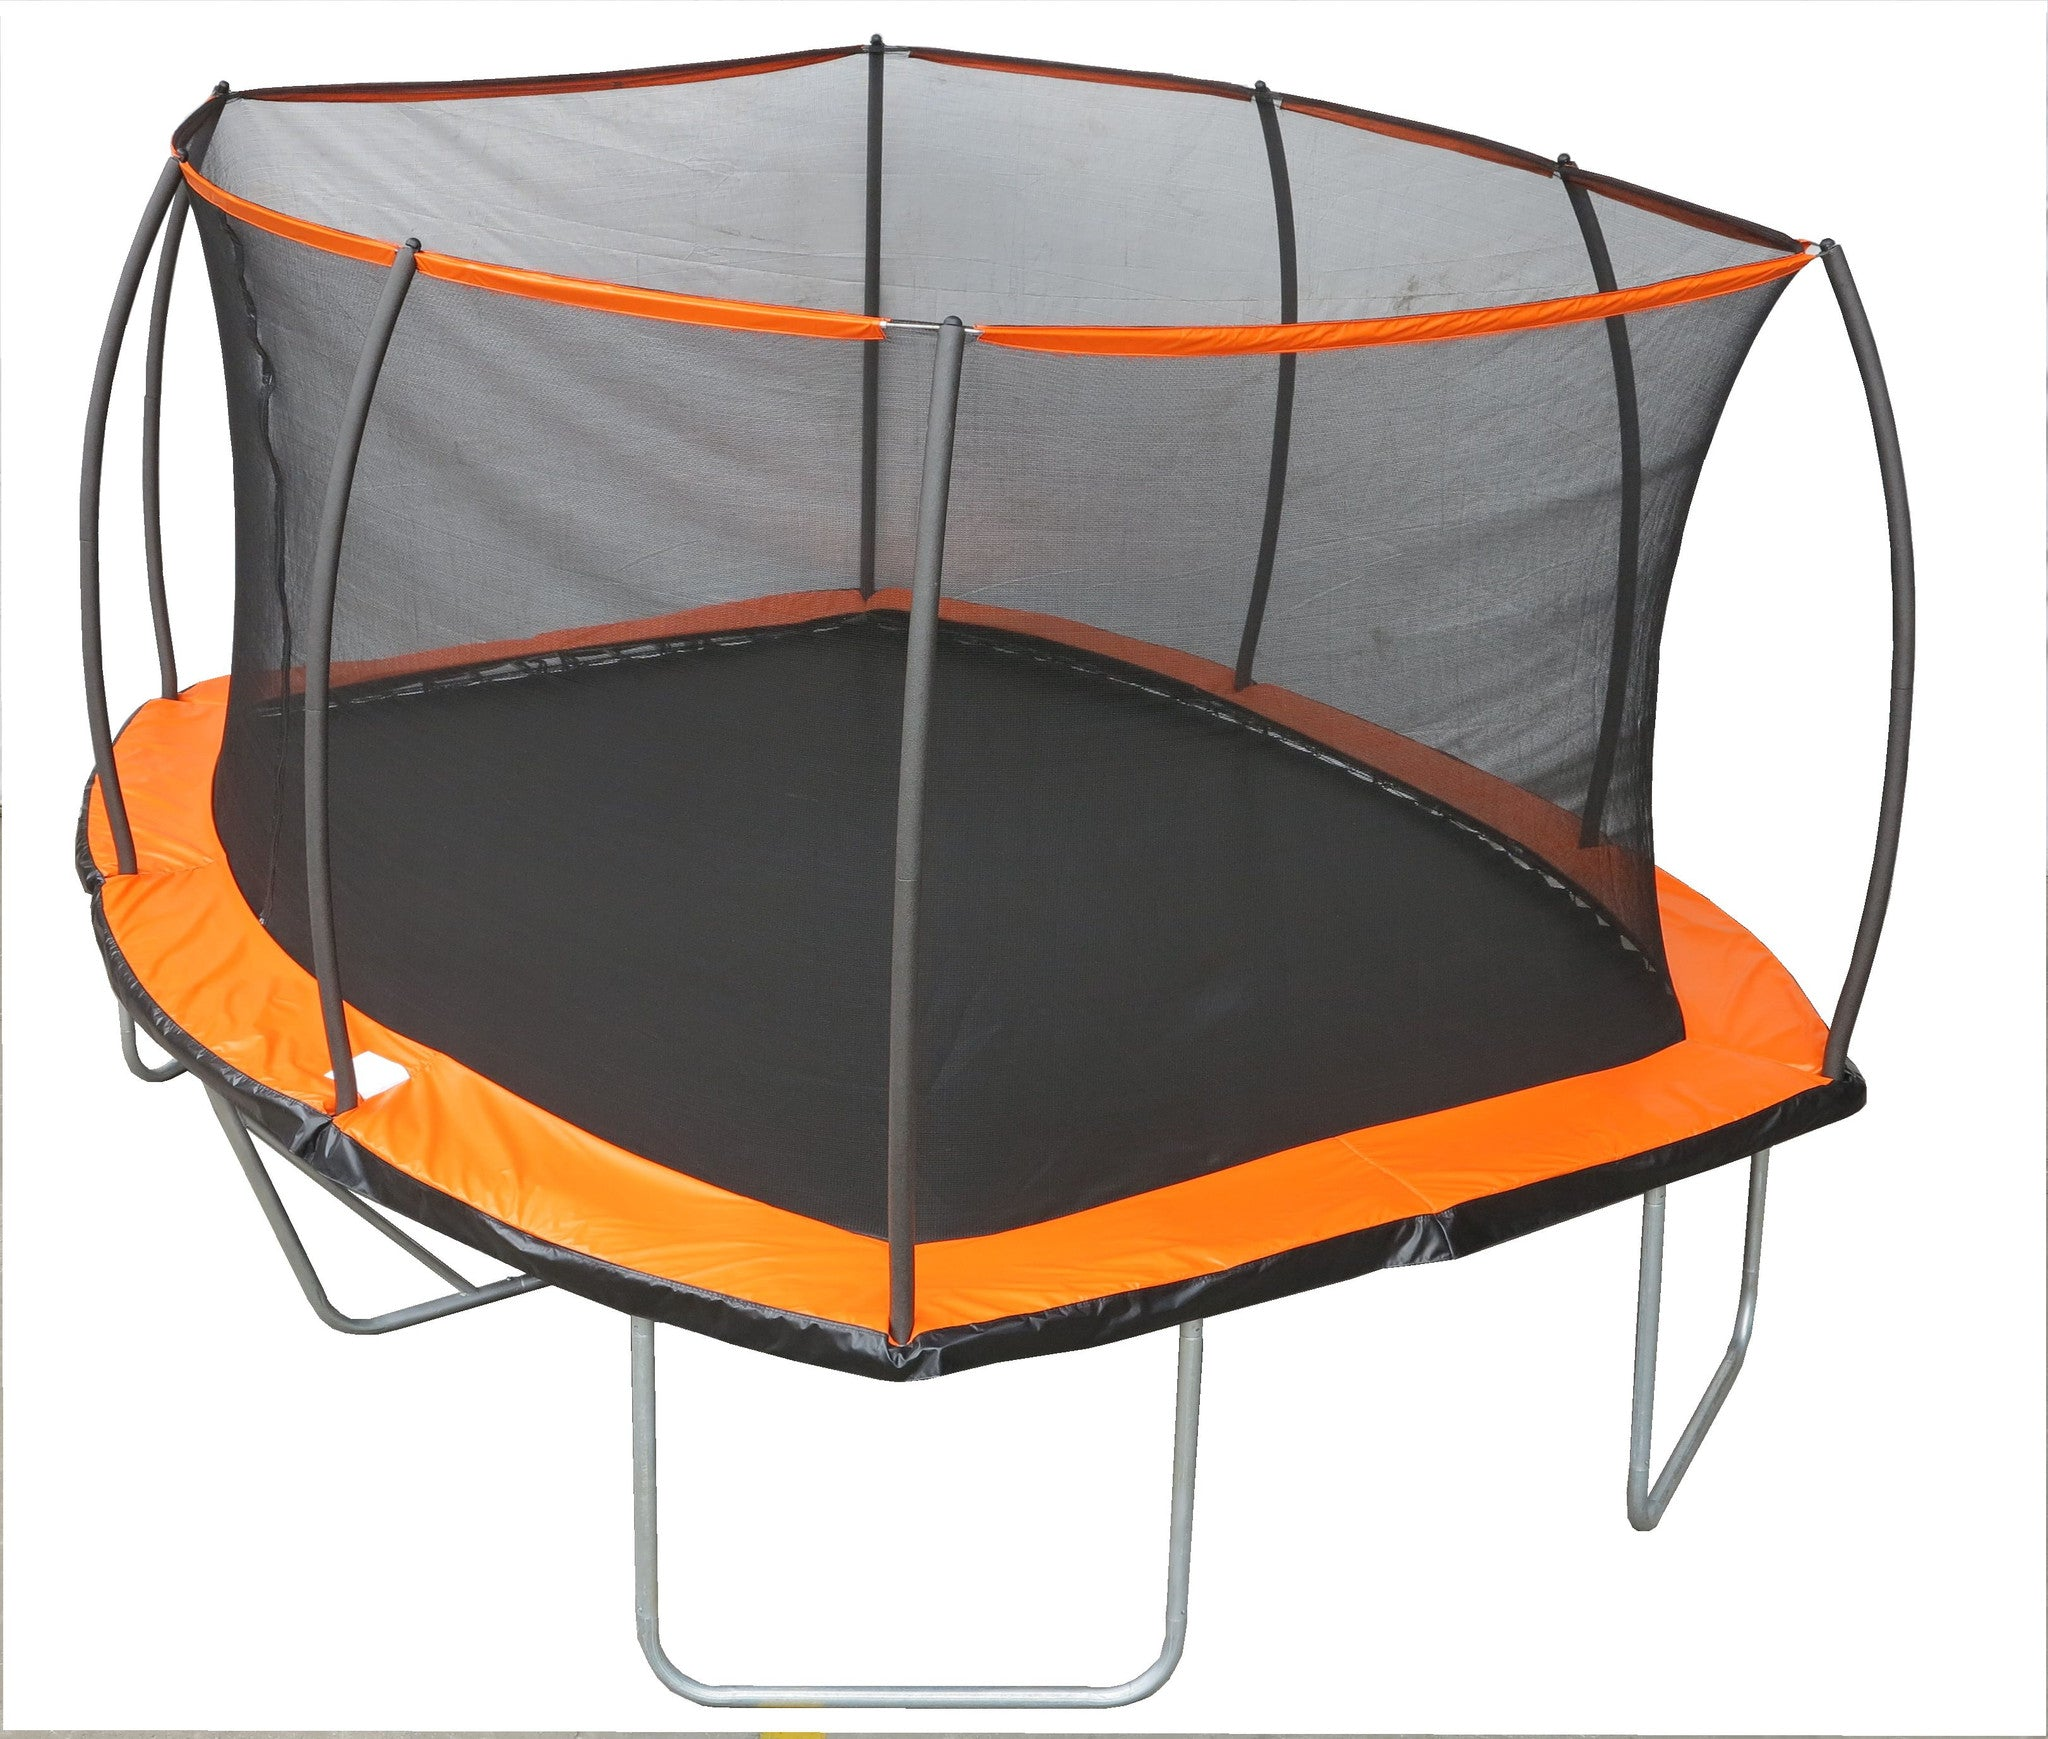 15ft. X 10ft. Rectangular Trampoline & Patented Safety Net